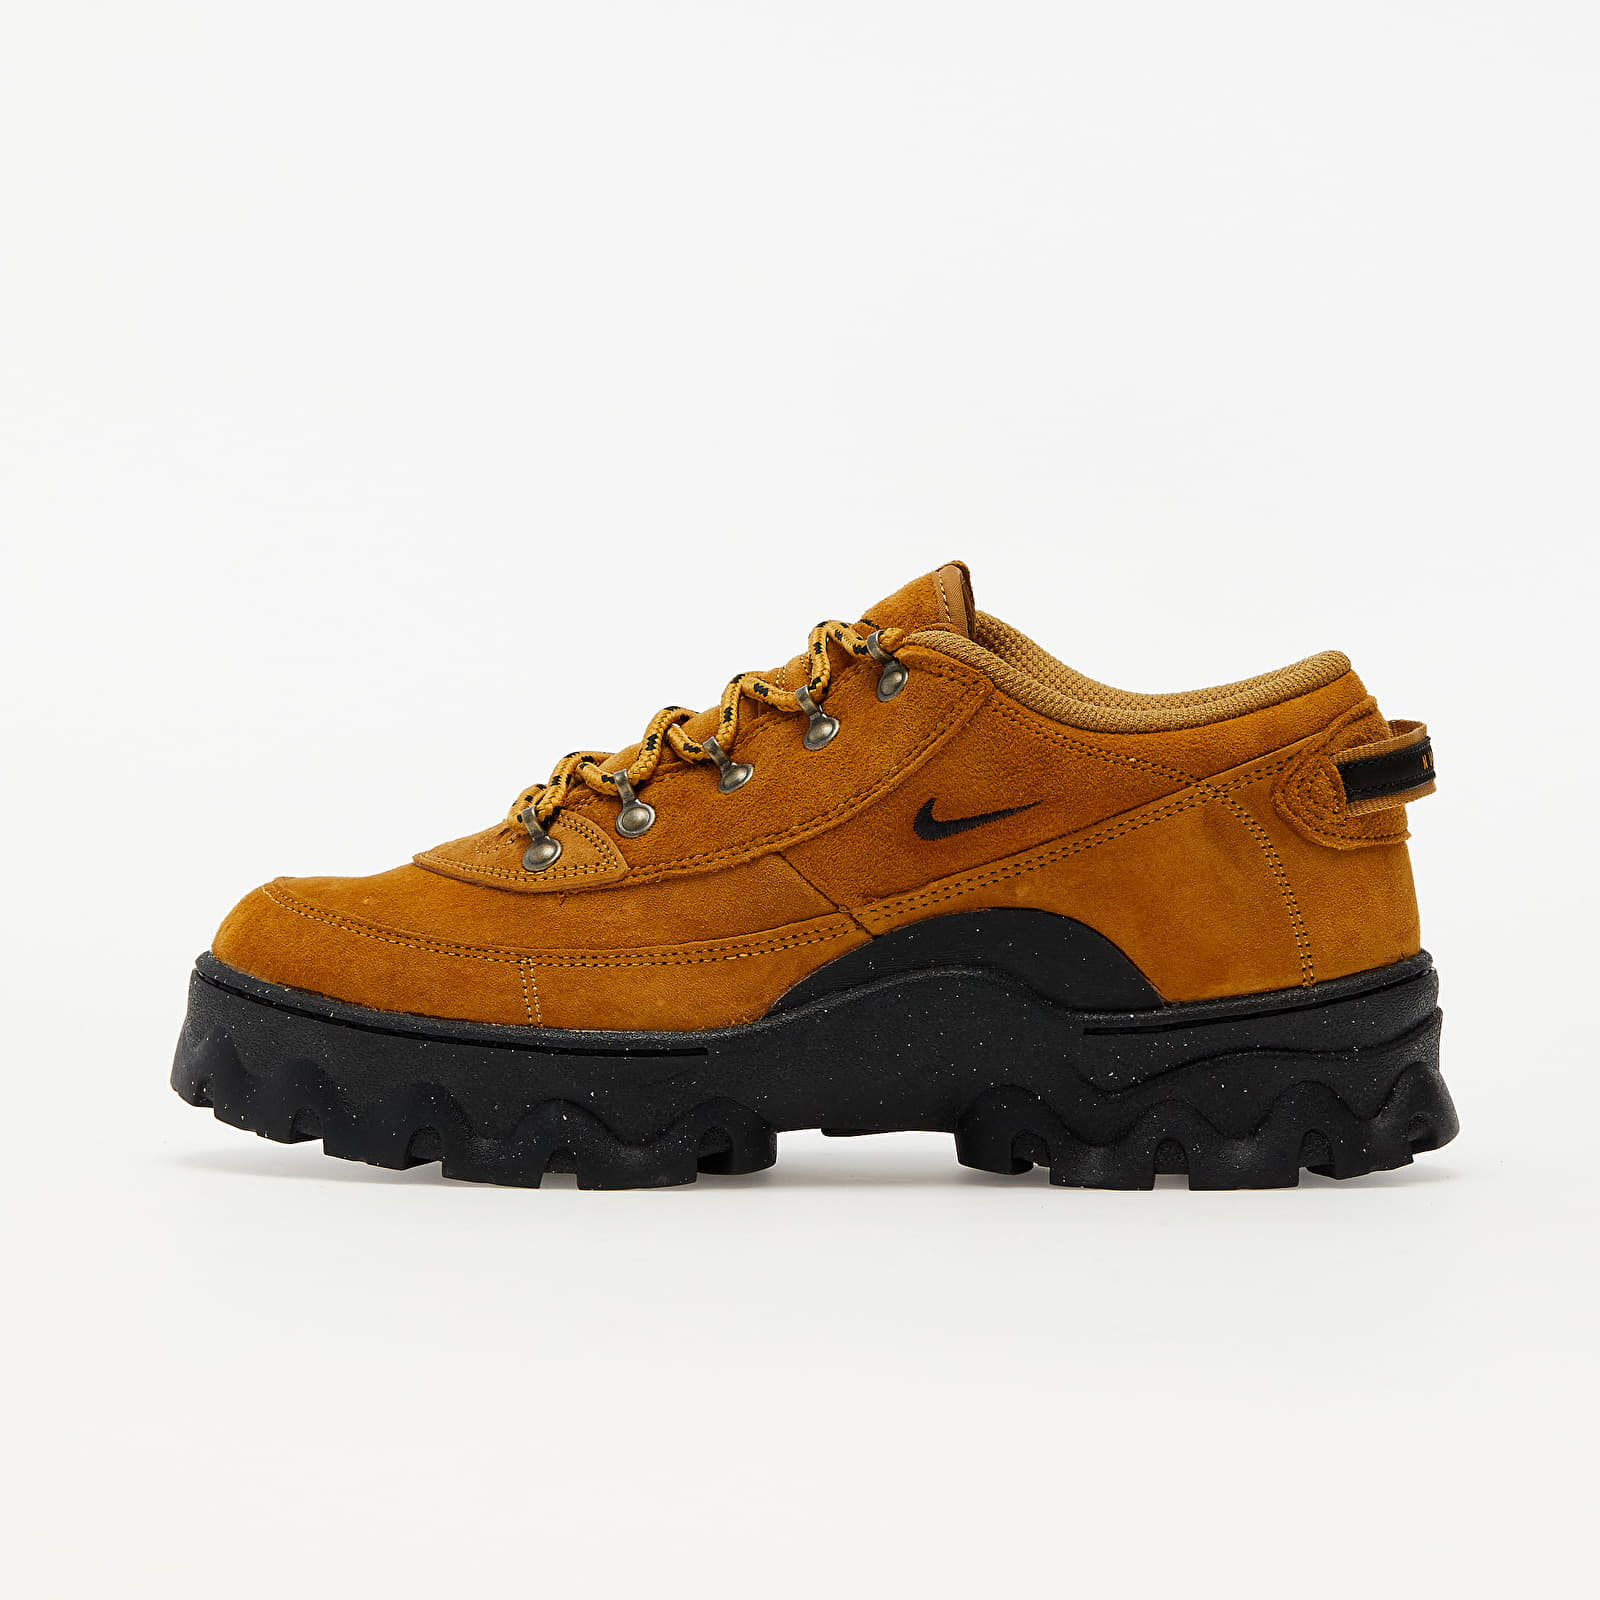 Nike W Lahar Low Wheat/ Black-Orange-Wheat EUR 44.5